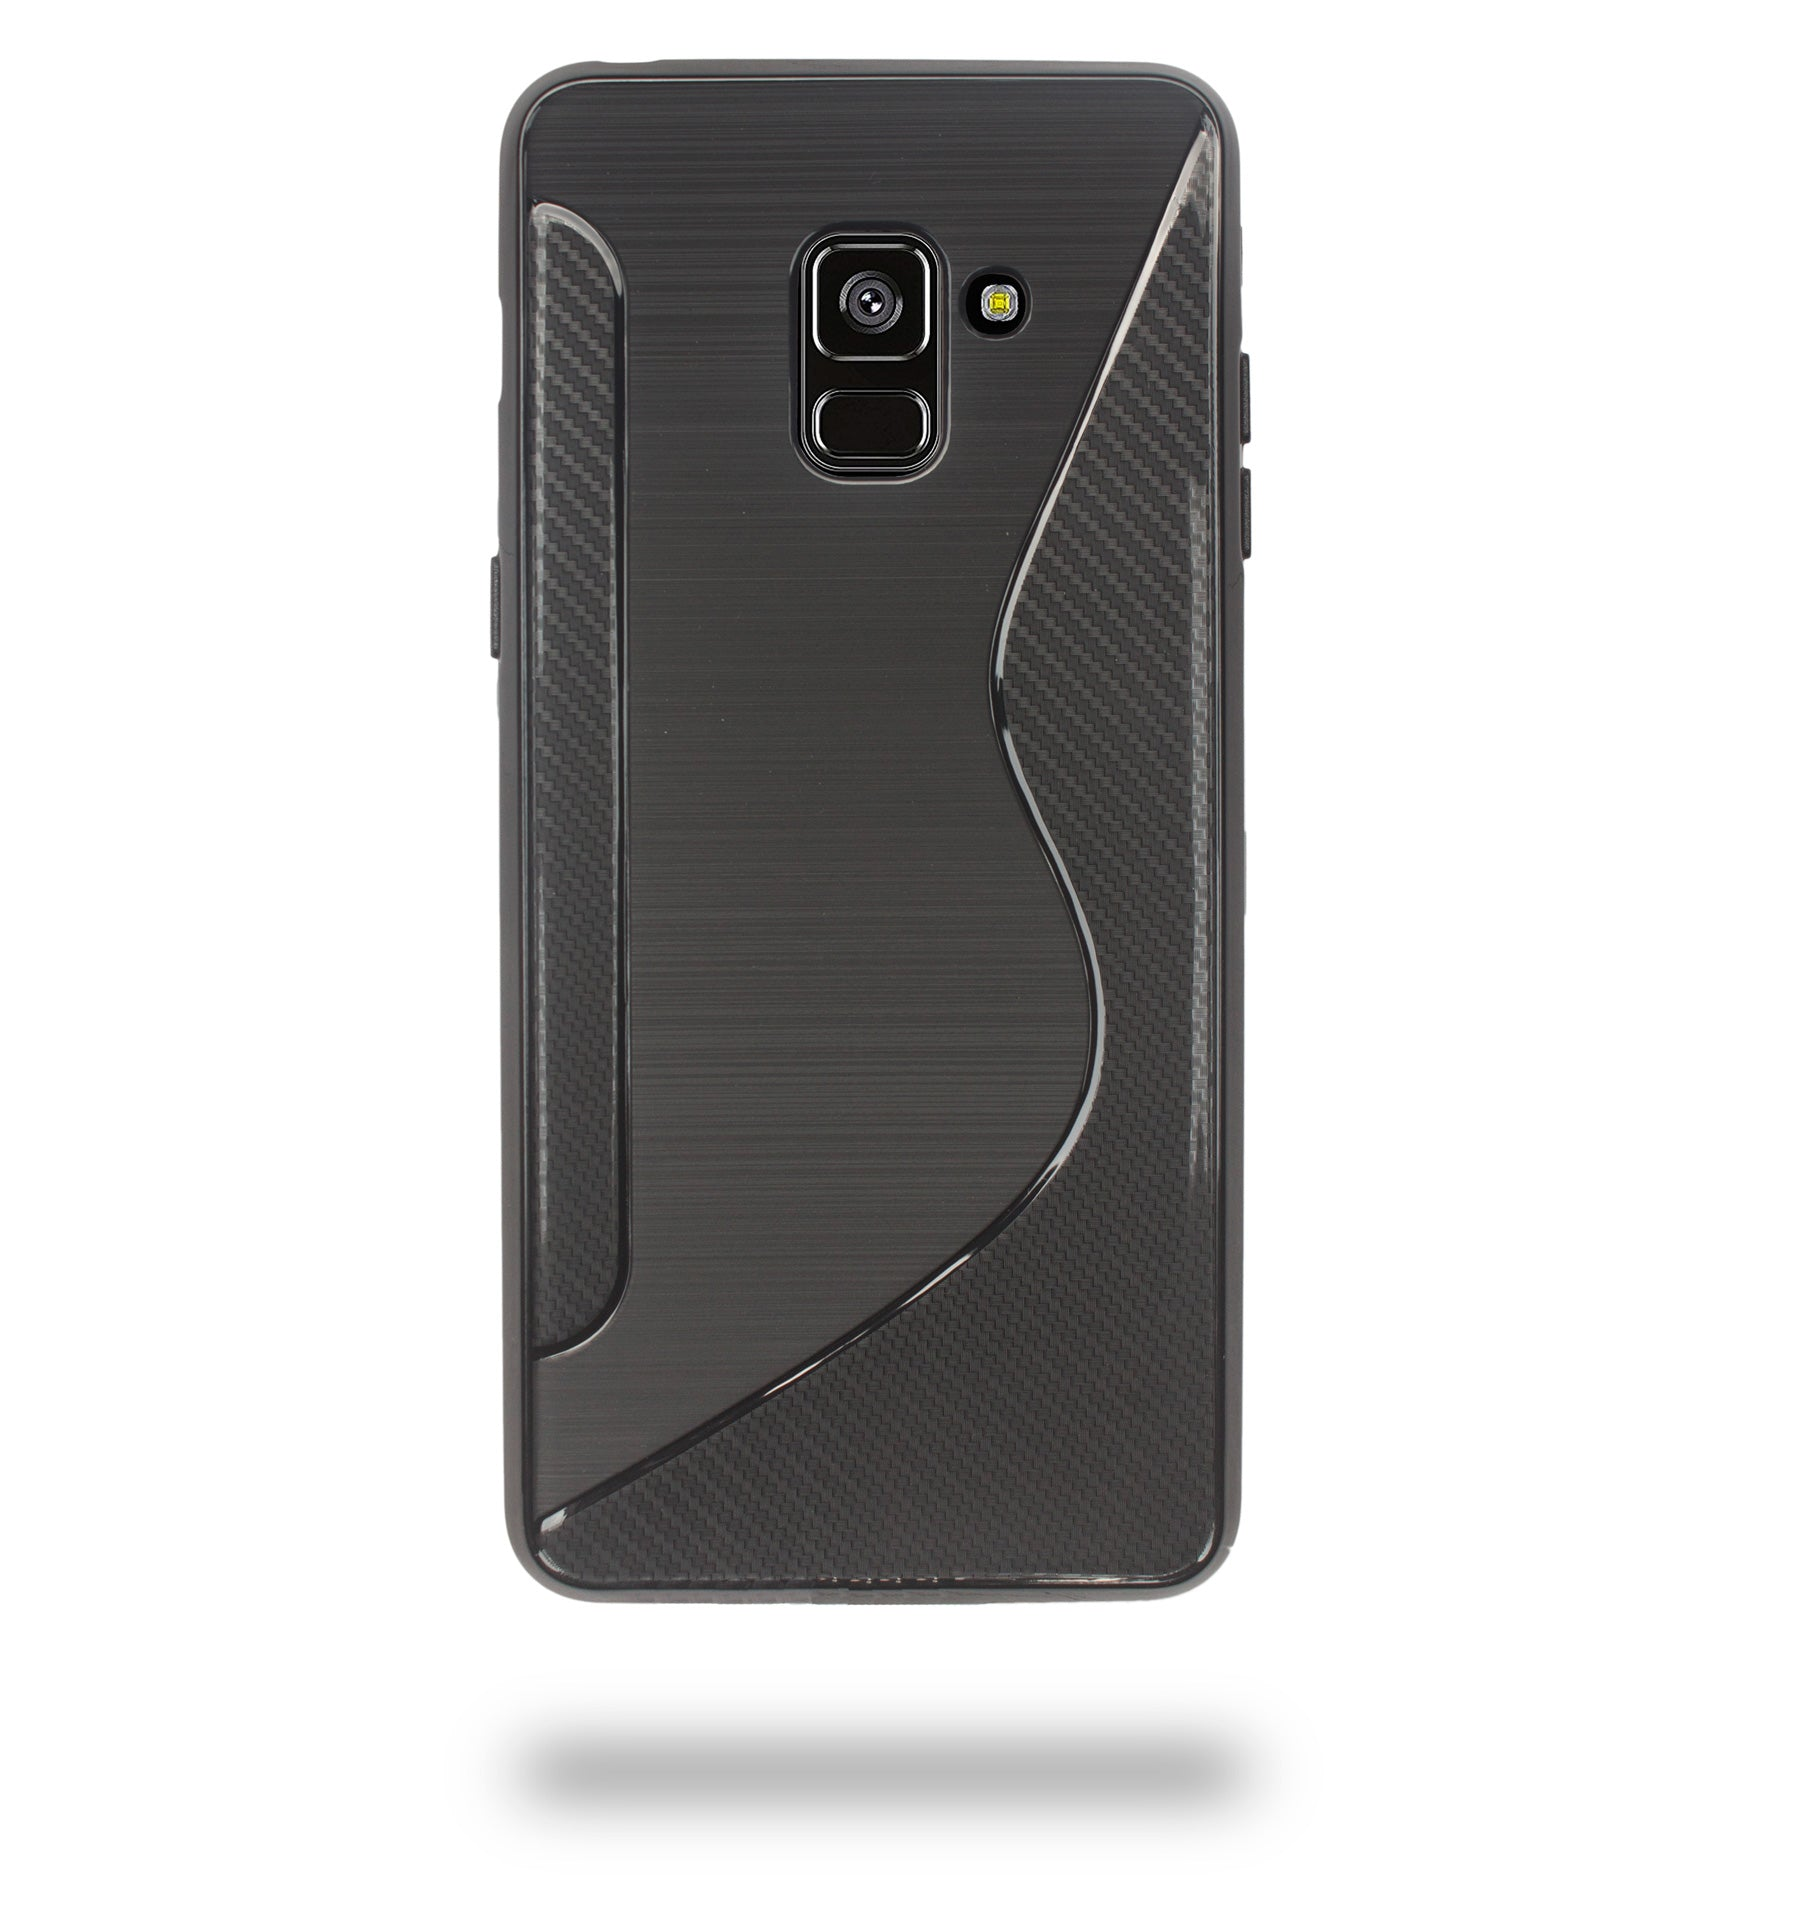 Ceego Carbon Fiber TPU Back Cover for Samsung Galaxy A8 Plus (2018)